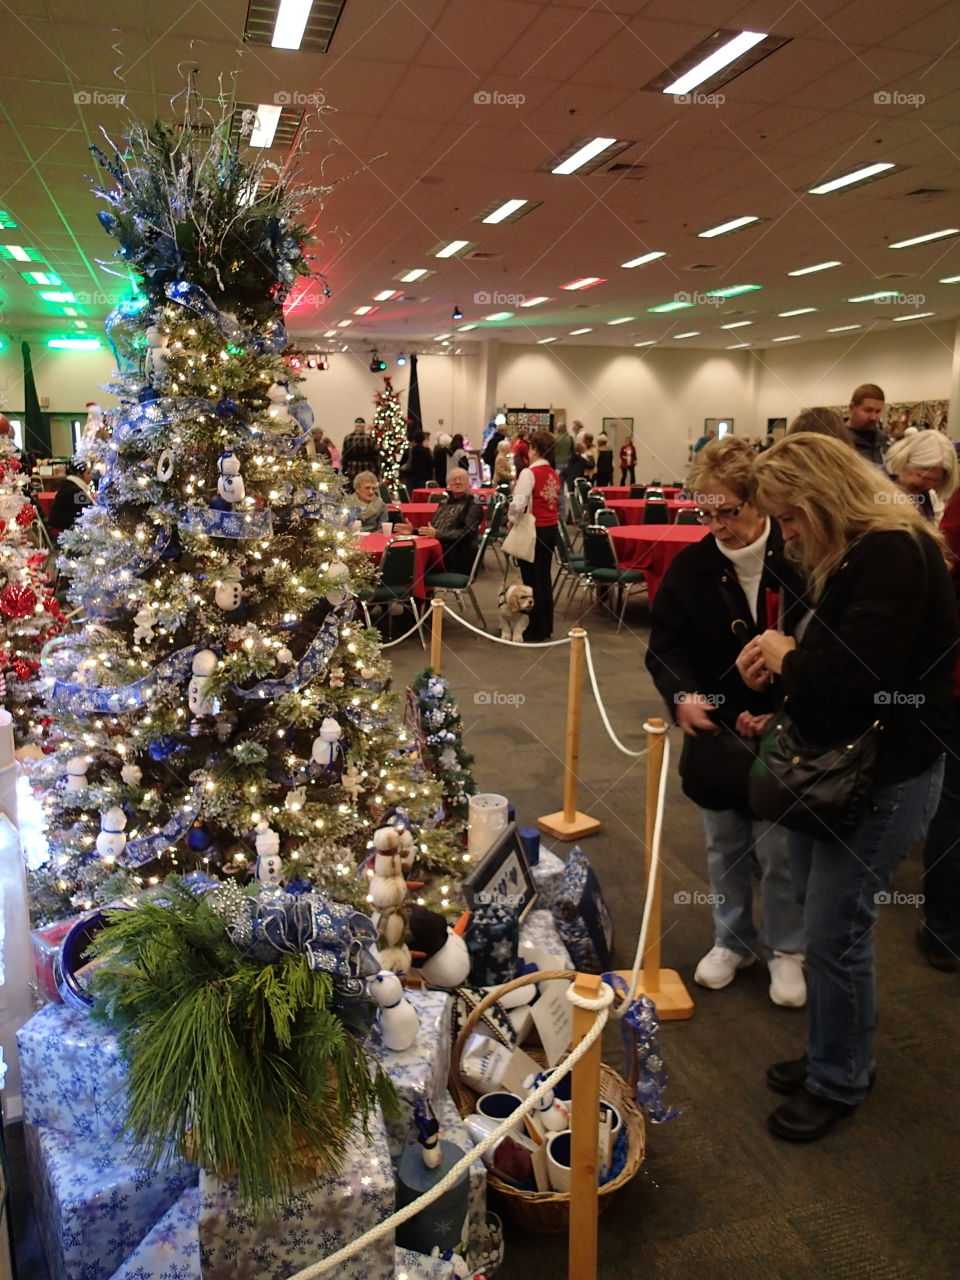 People looking at one of the many beautifully decorated Christmas trees at a fundraising event.